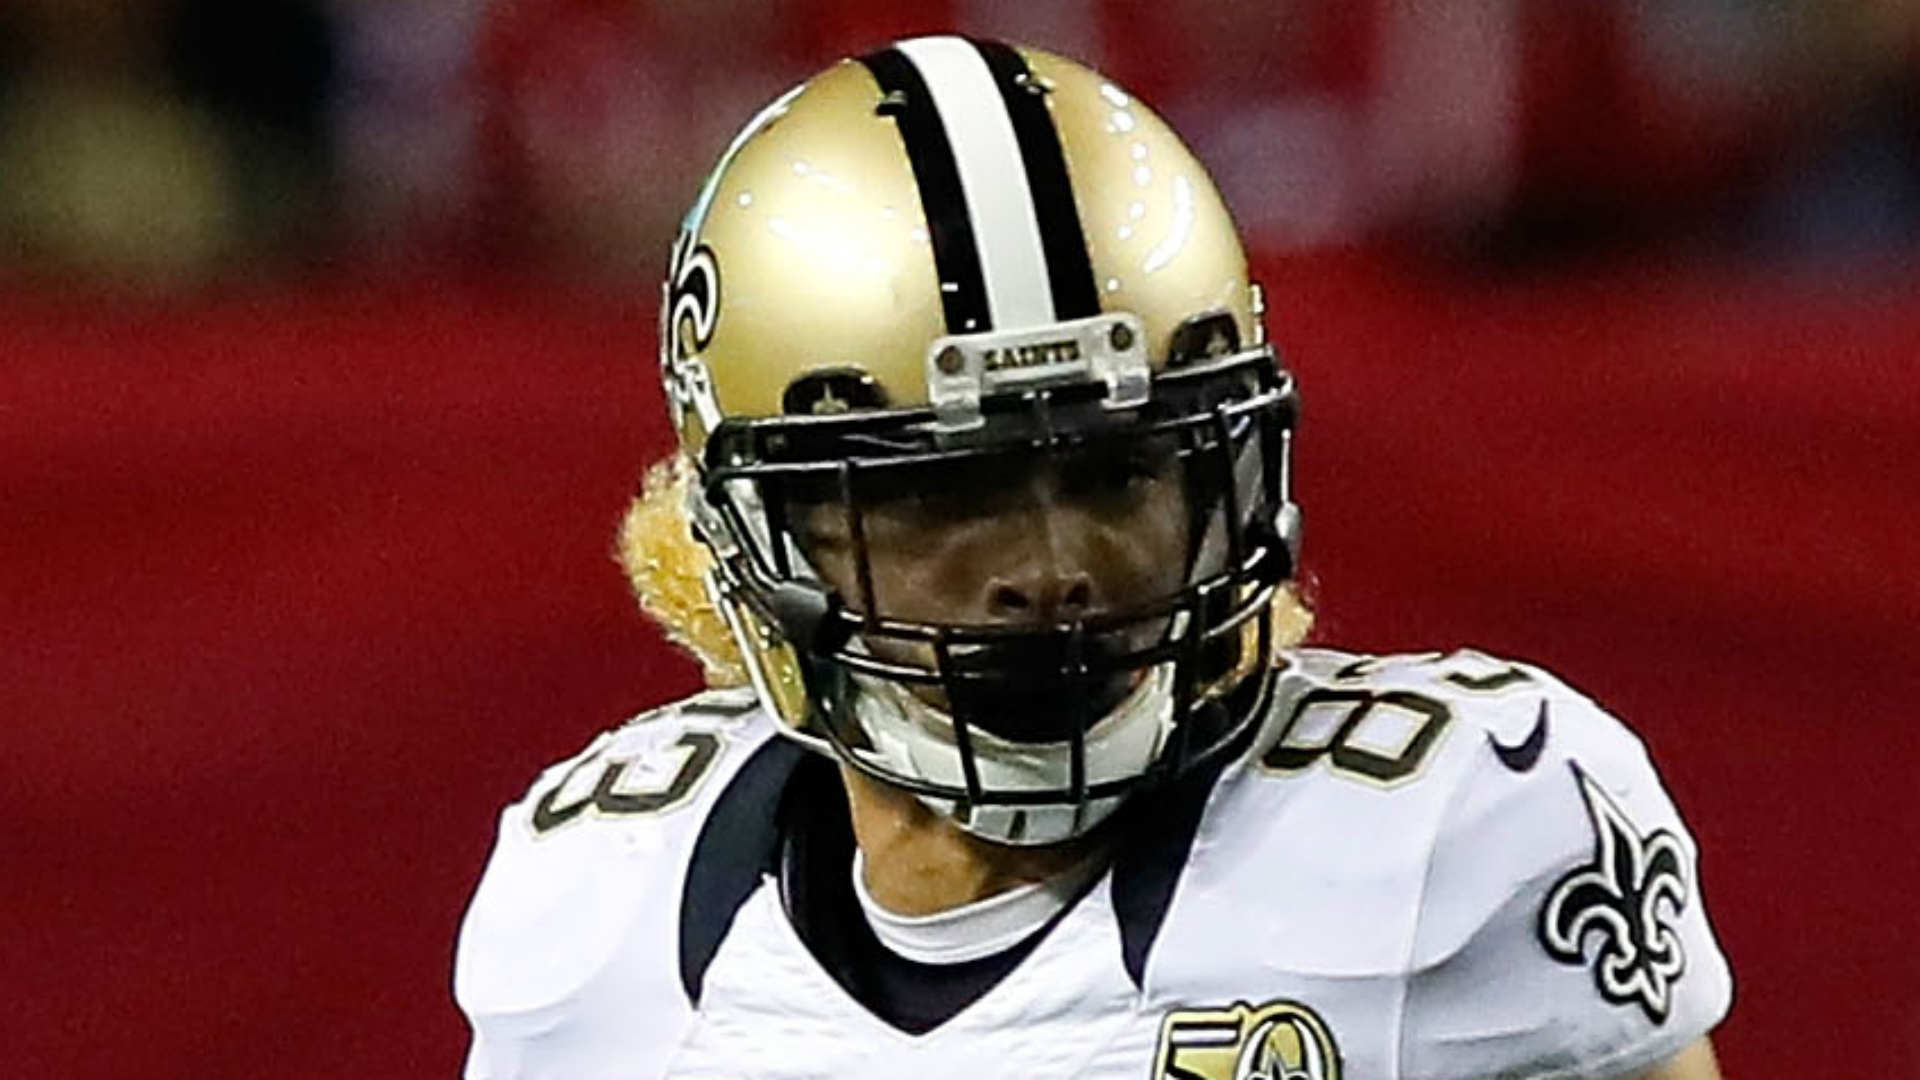 Willie Snead suspended for 3 games due to offseason DUI